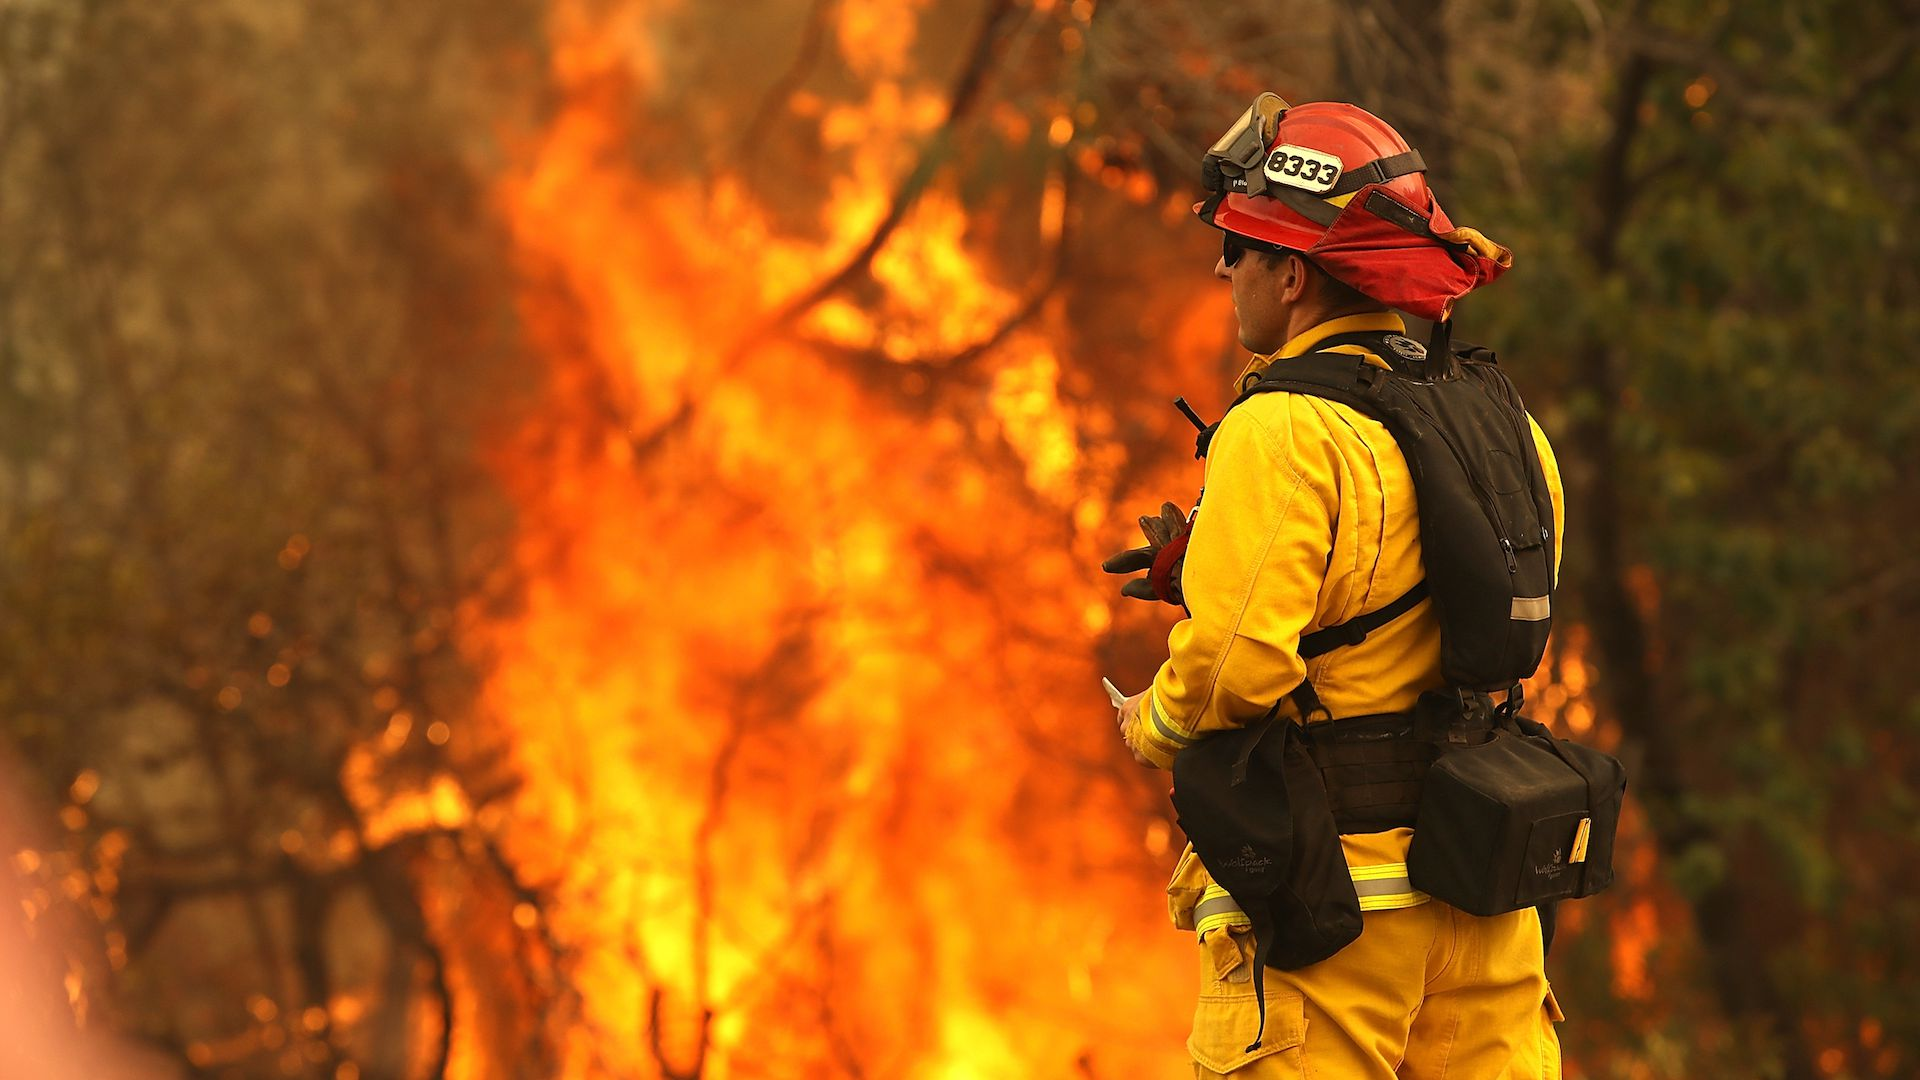 Firefighter battling the flames from the deadly Carr Fire in northern California.